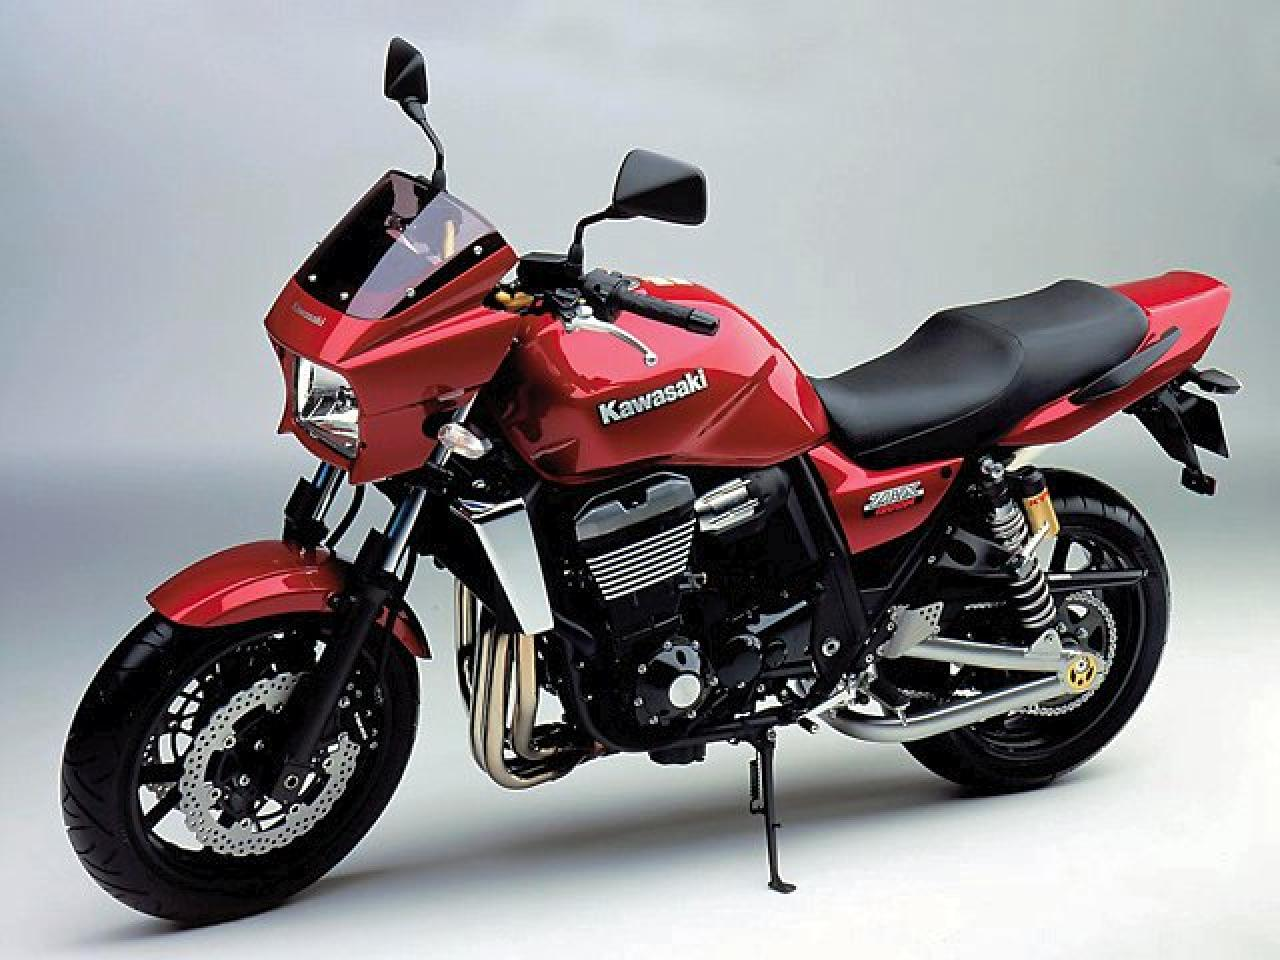 2014 kawasaki zrx1200 daeg moto zombdrive com. Black Bedroom Furniture Sets. Home Design Ideas